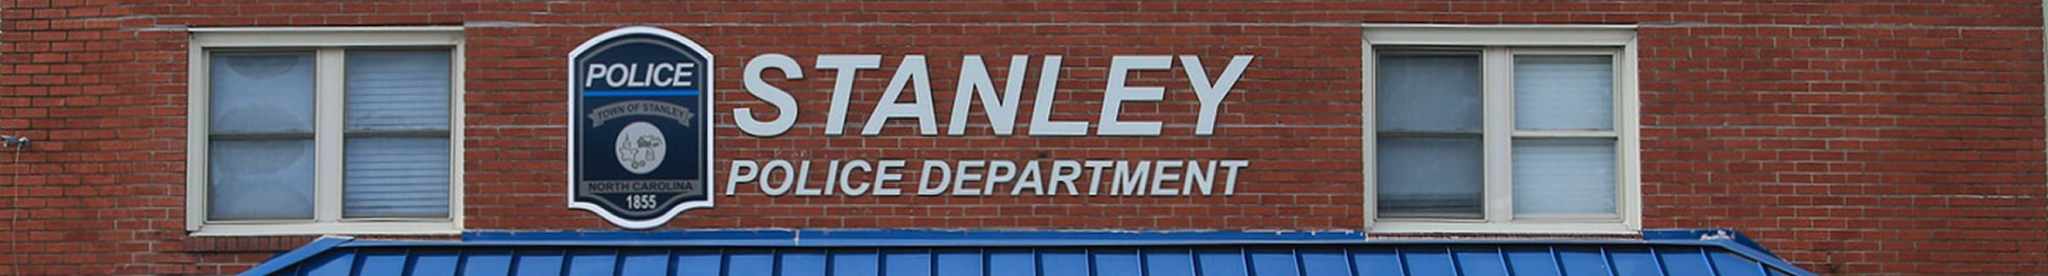 Stanley, NC Police Department